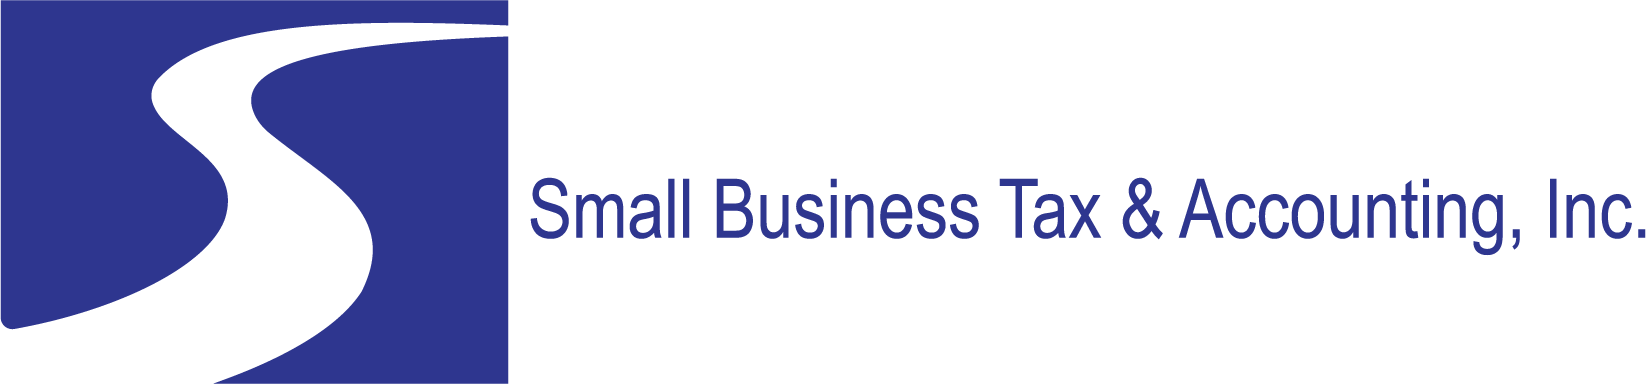 Small Business Tax & Accounting,. Inc.